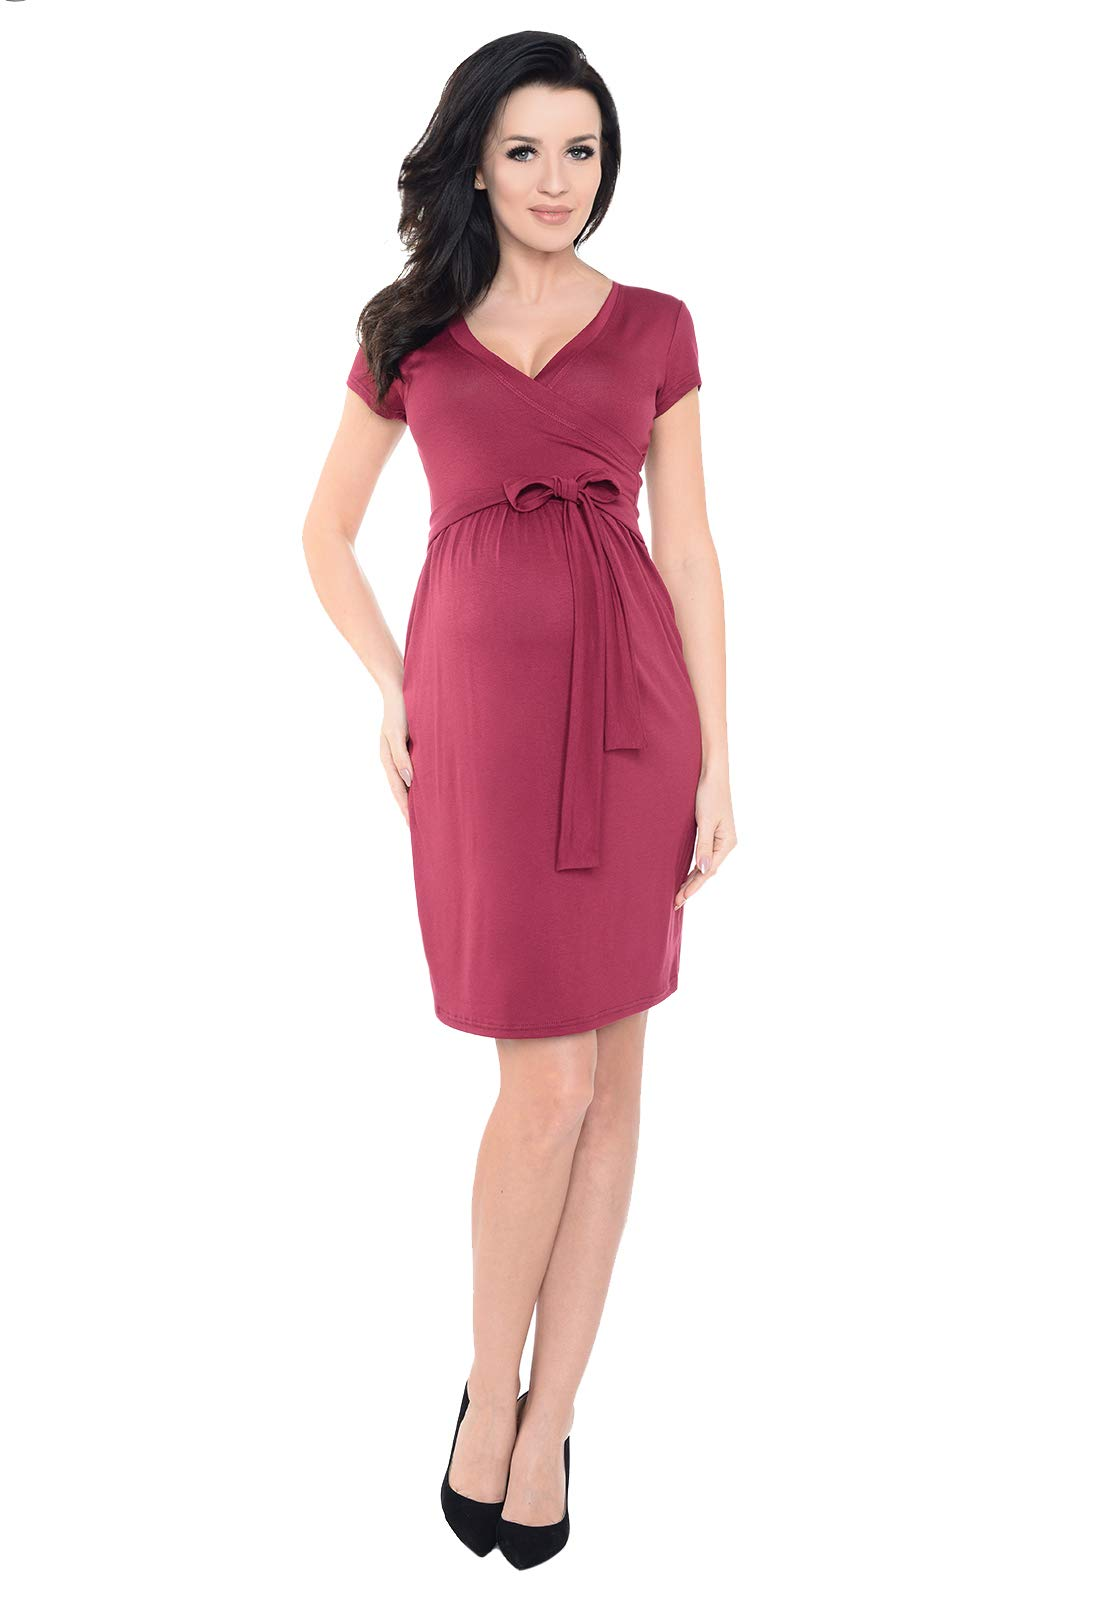 f13042075a7b55 Purpless Maternity Cocktail V Neck Pregnancy Dress with Belt 5416 ...